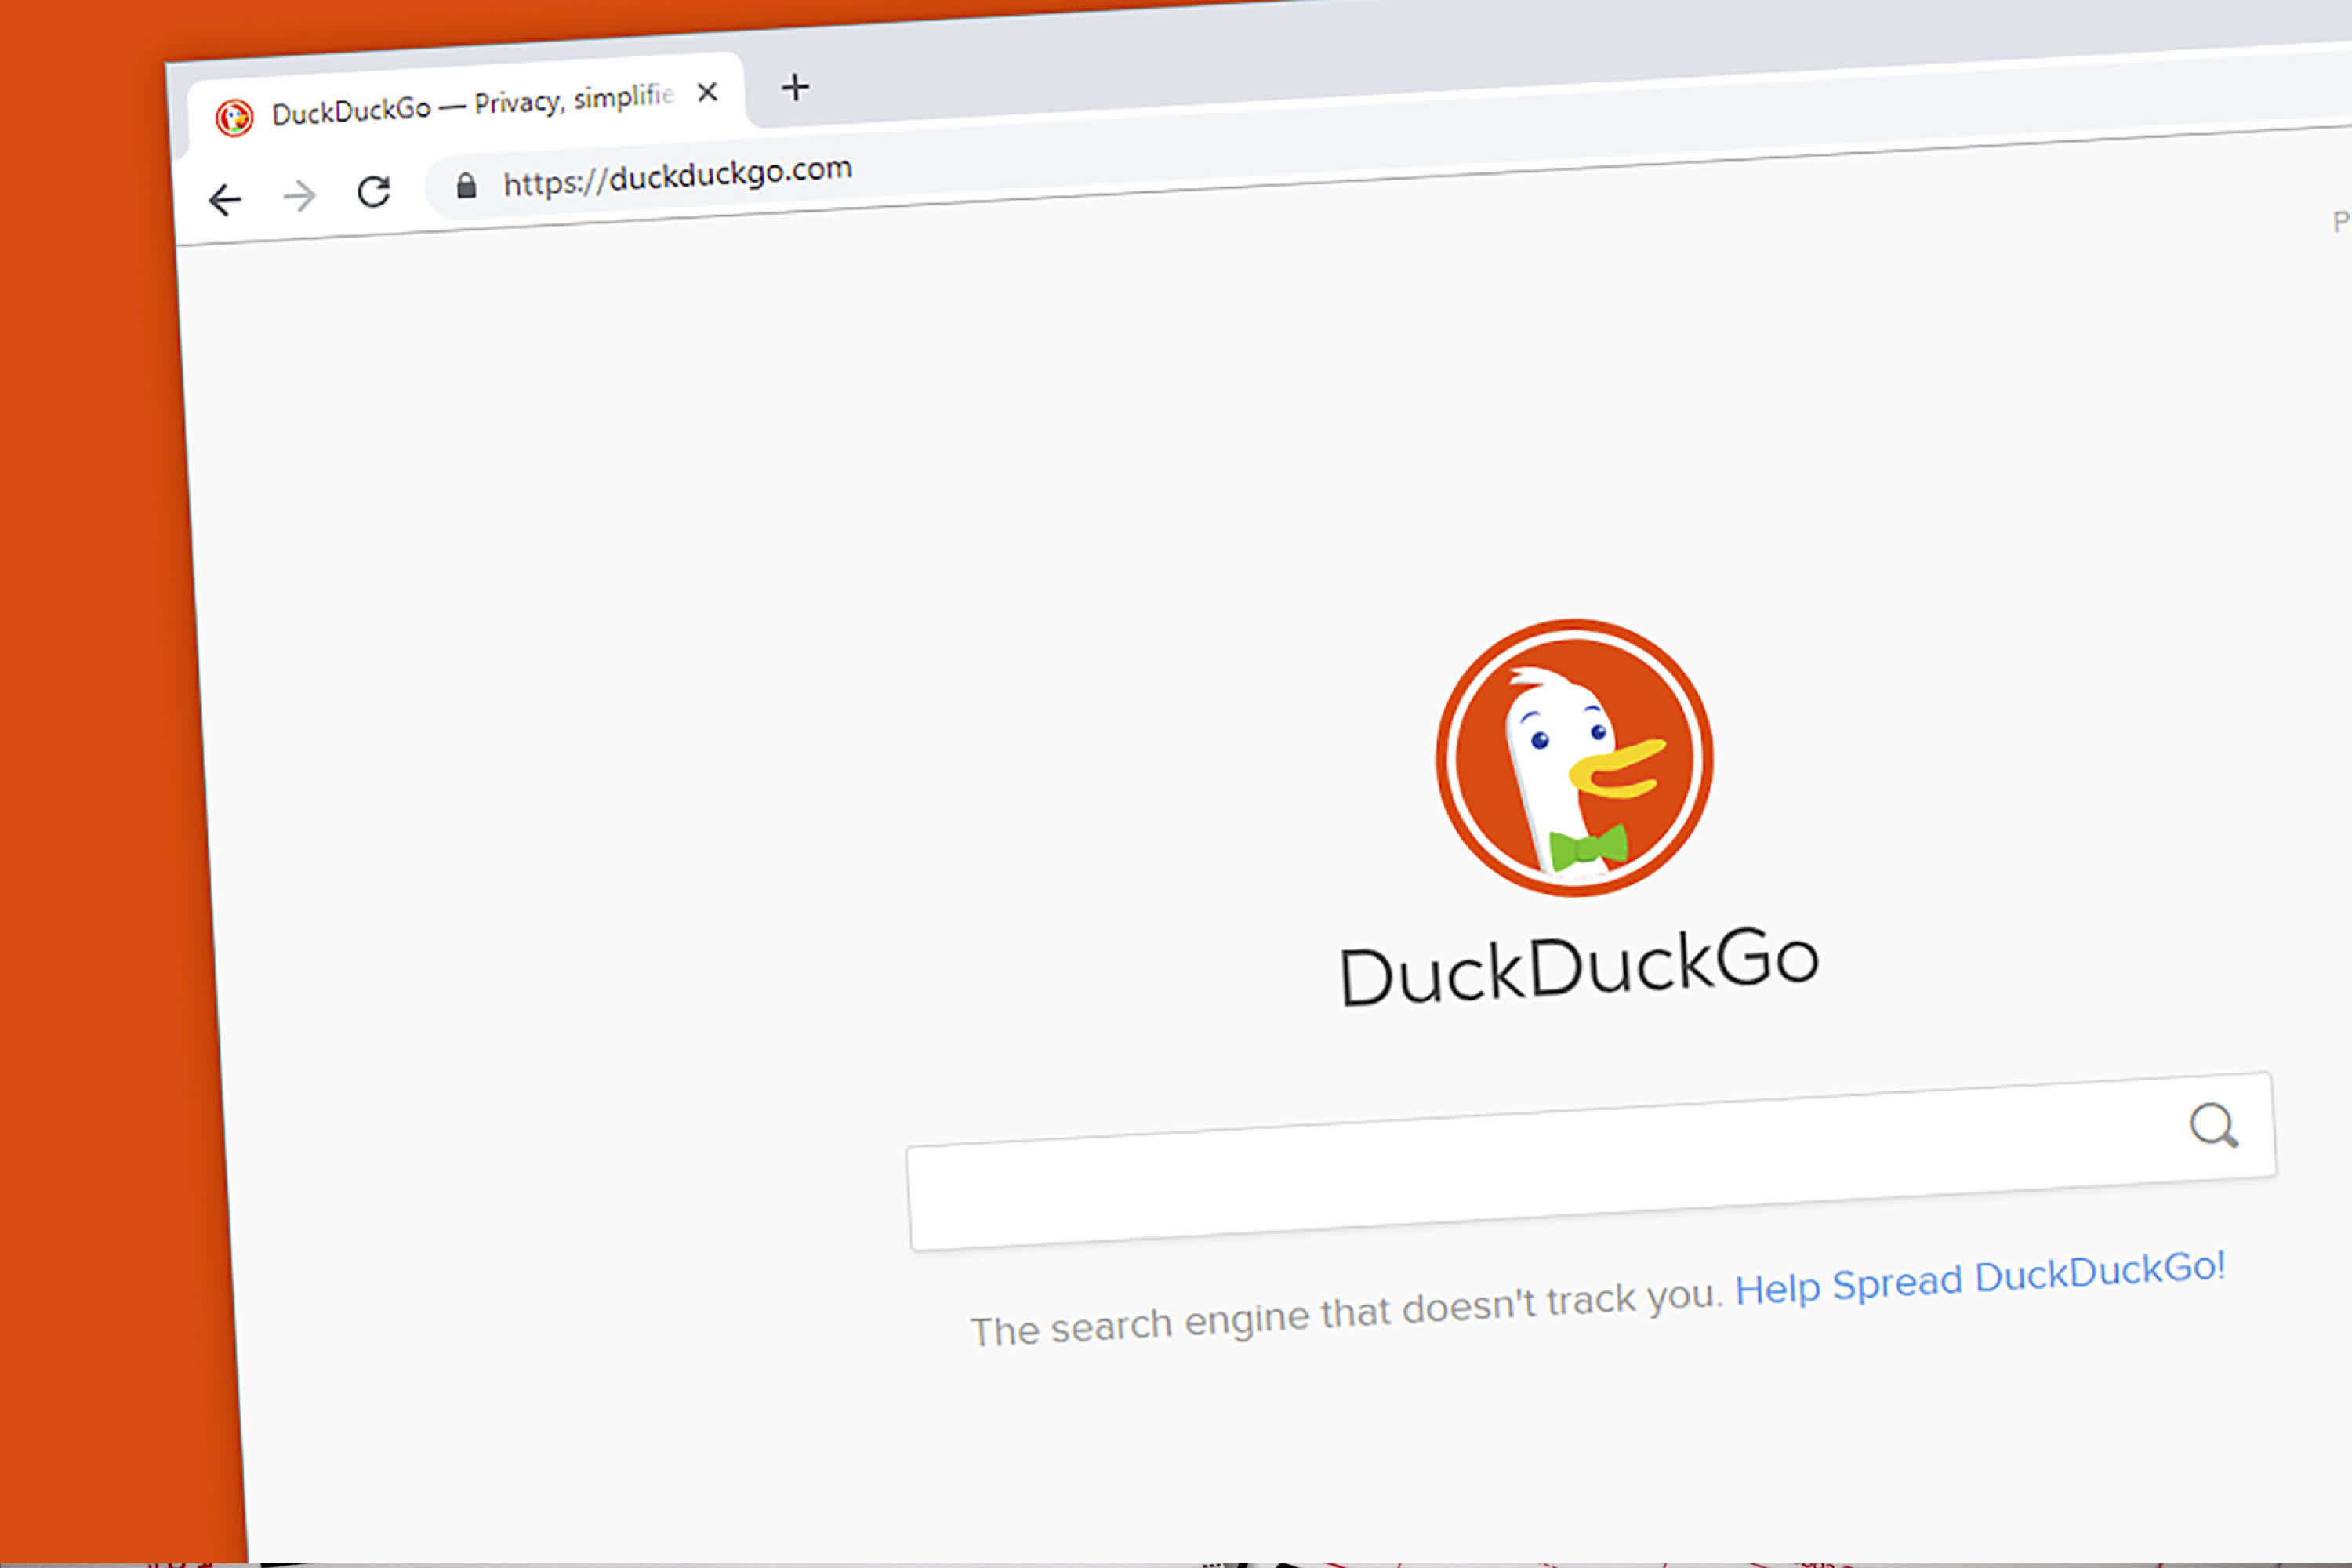 DuckDuckGo's Chrome browser extension can now block Google's group-based tracking technology